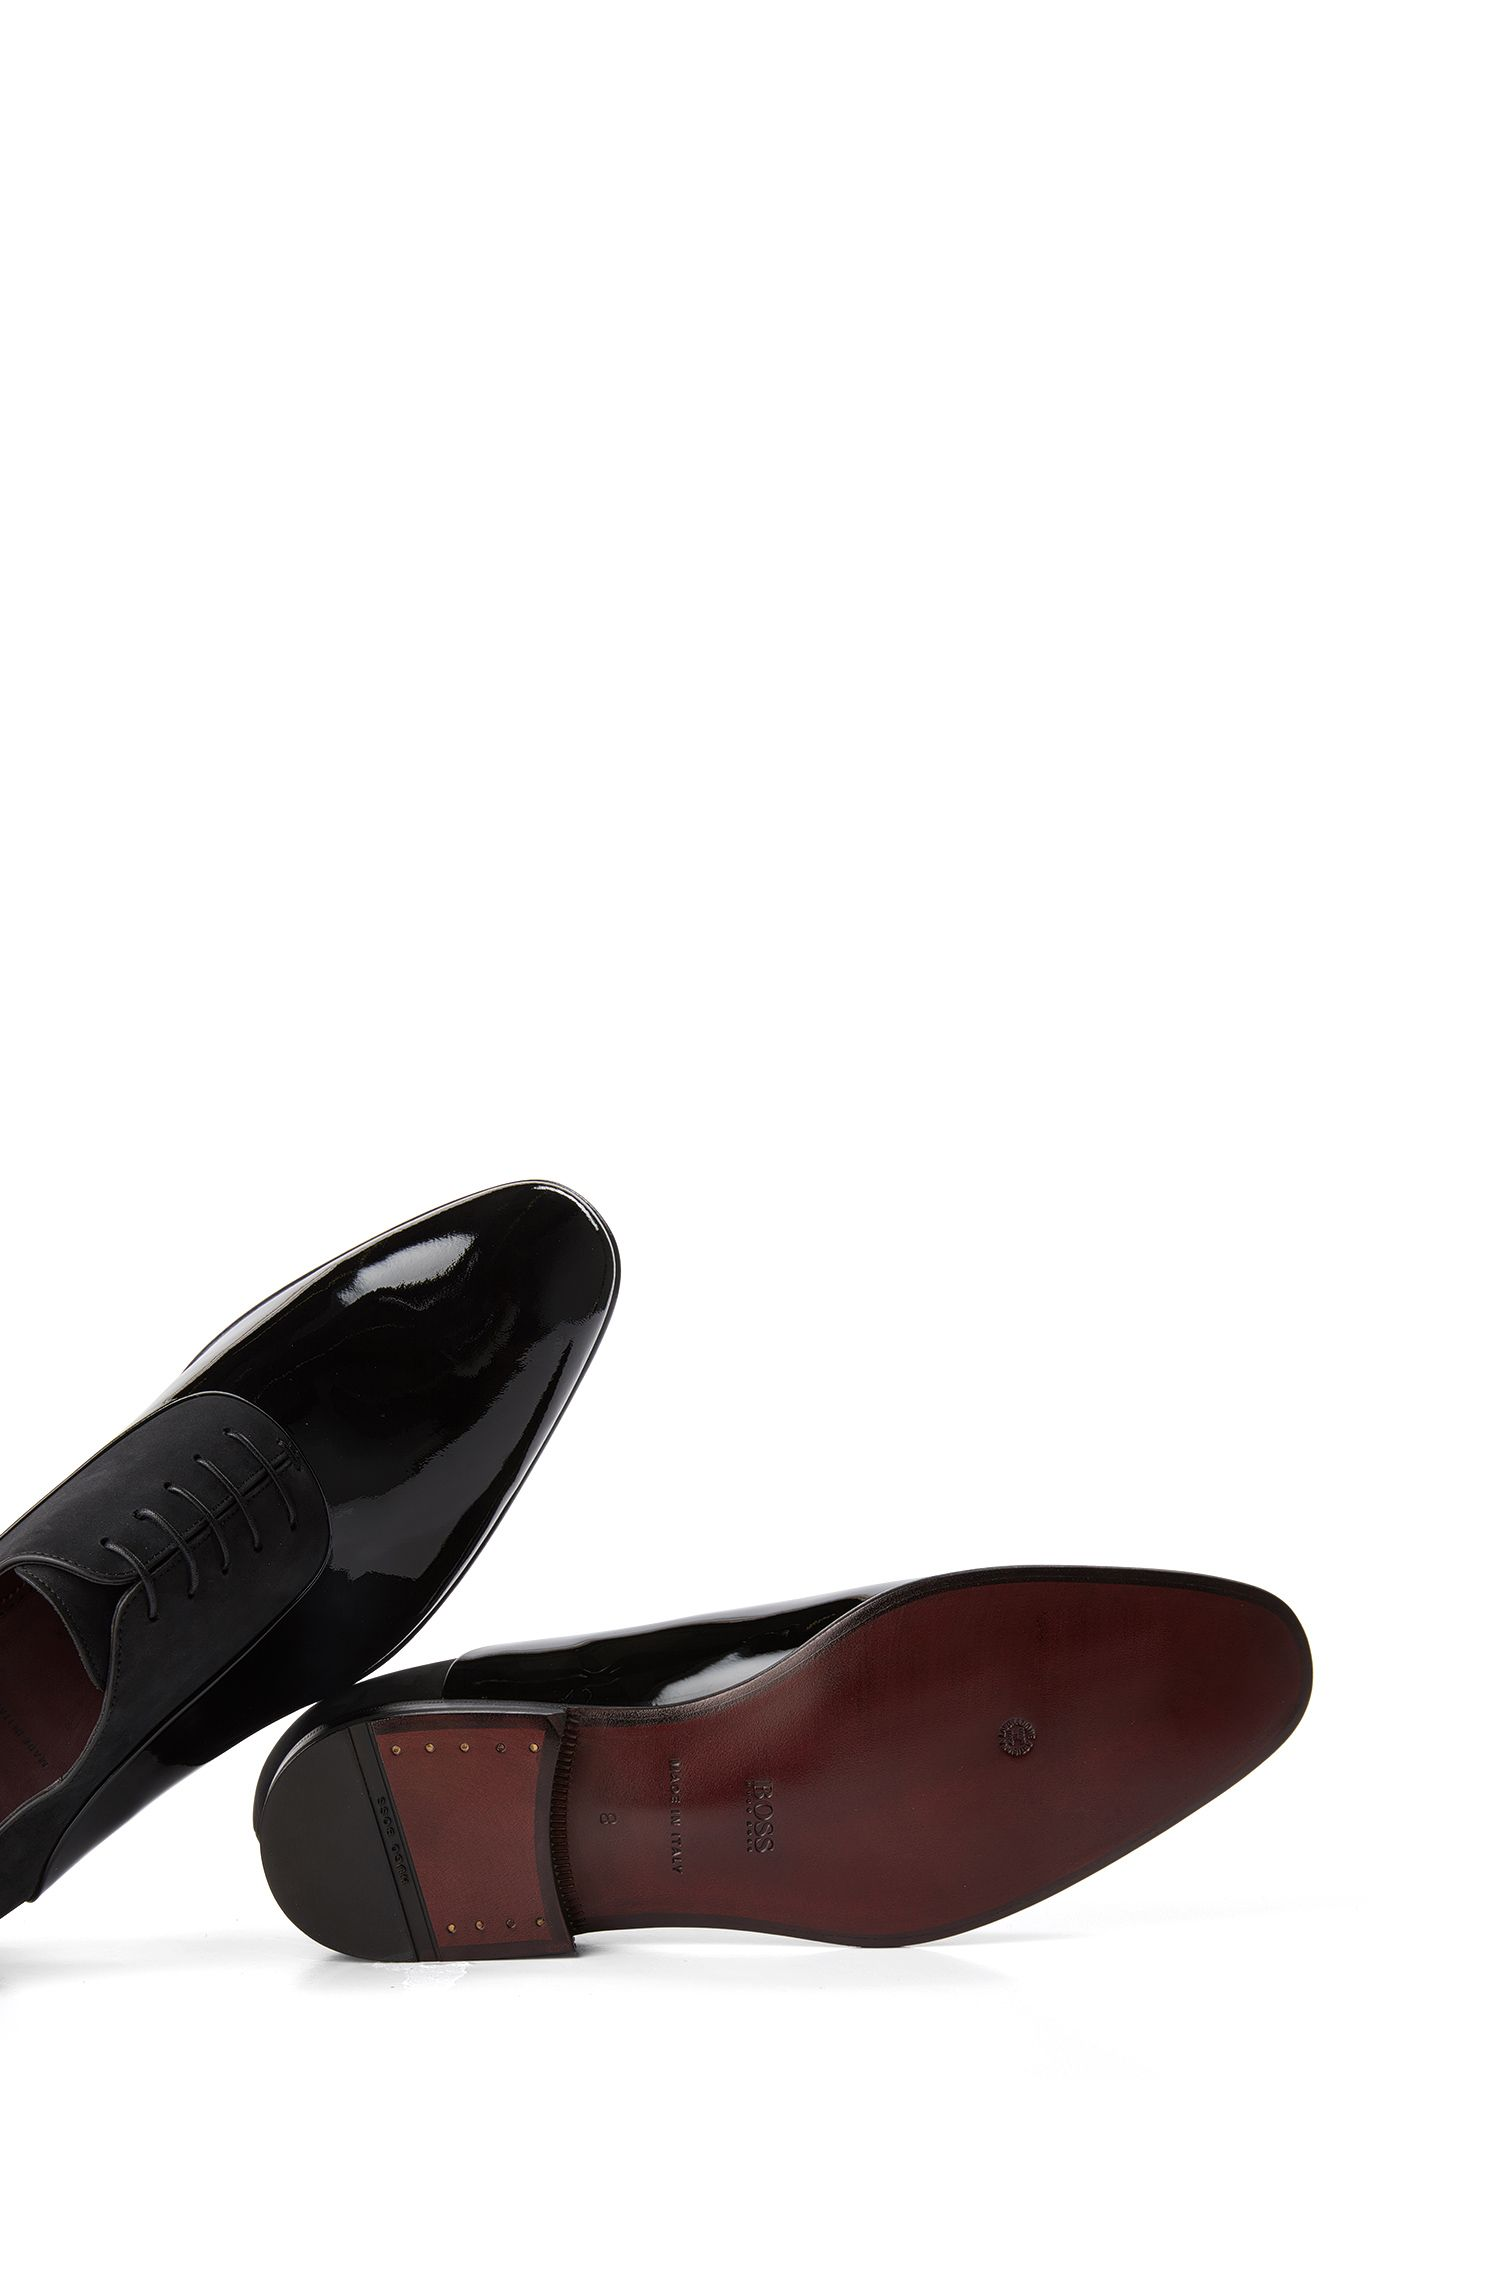 Italian Nubuck and Patent Leather Oxford Dress Shoe | T-Legend Oxfr Panu